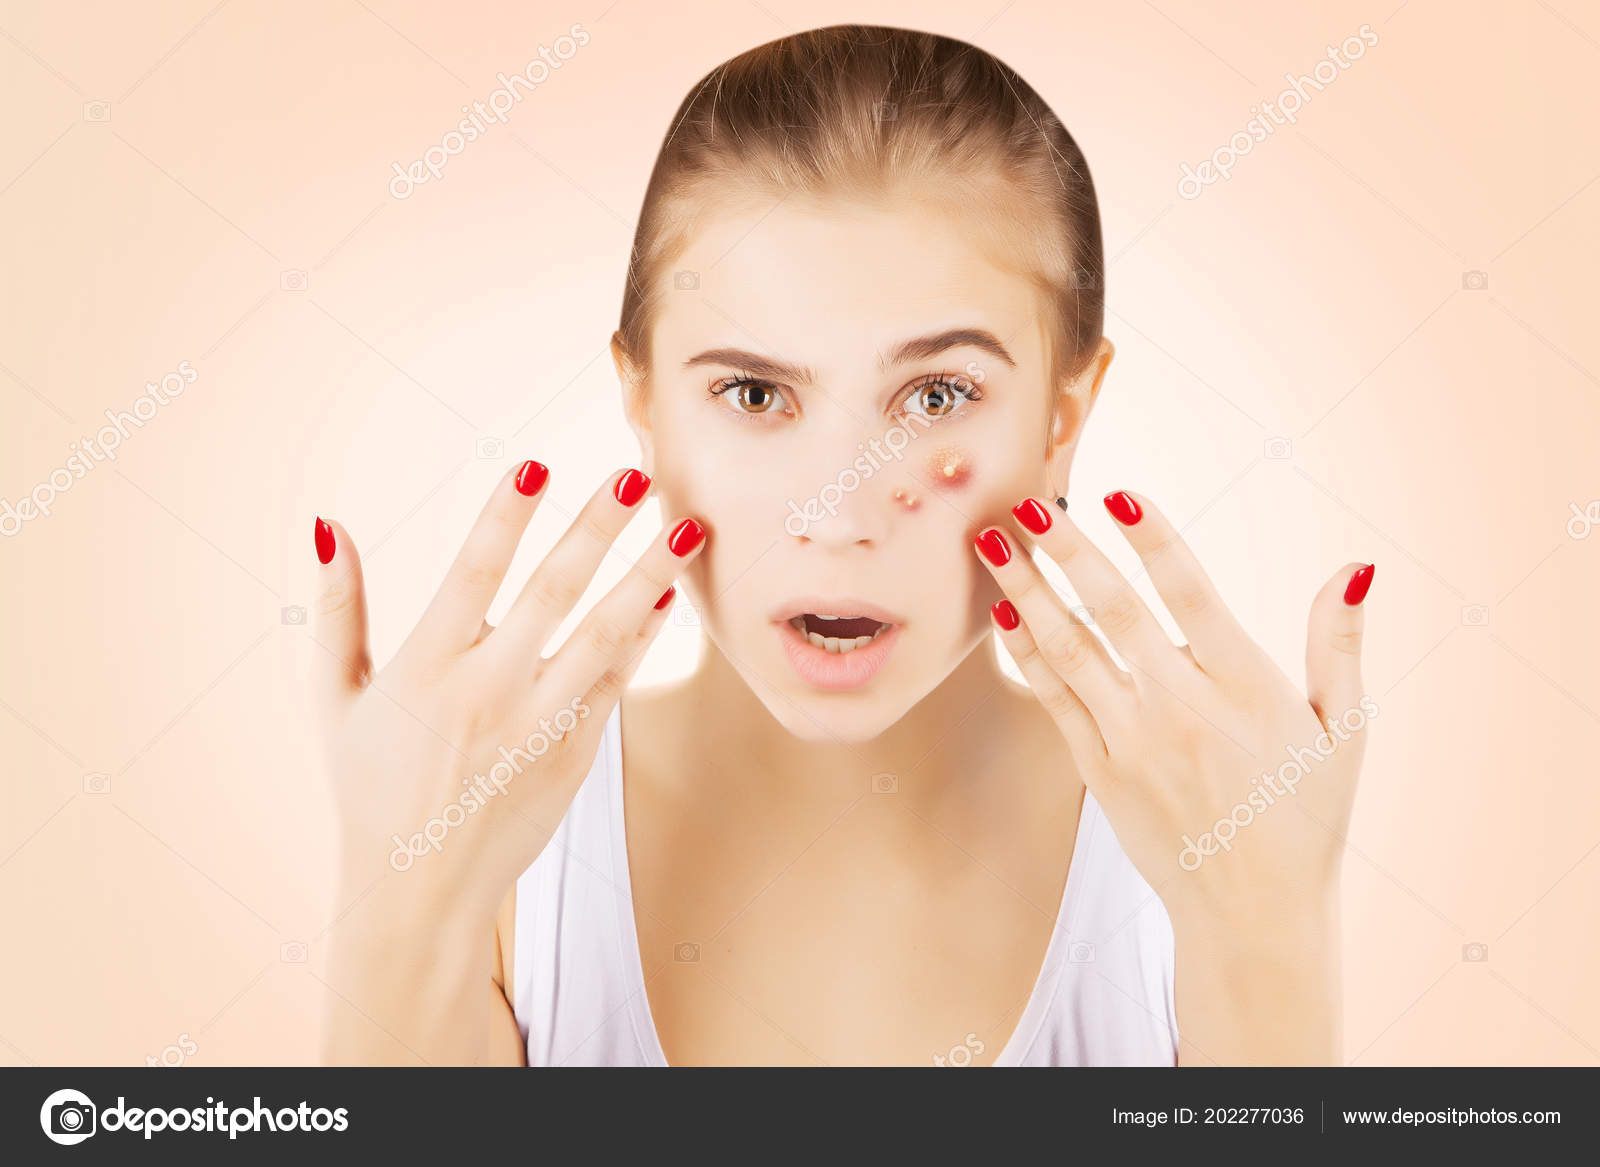 girl funny disgusted face examines her pimples stock photo